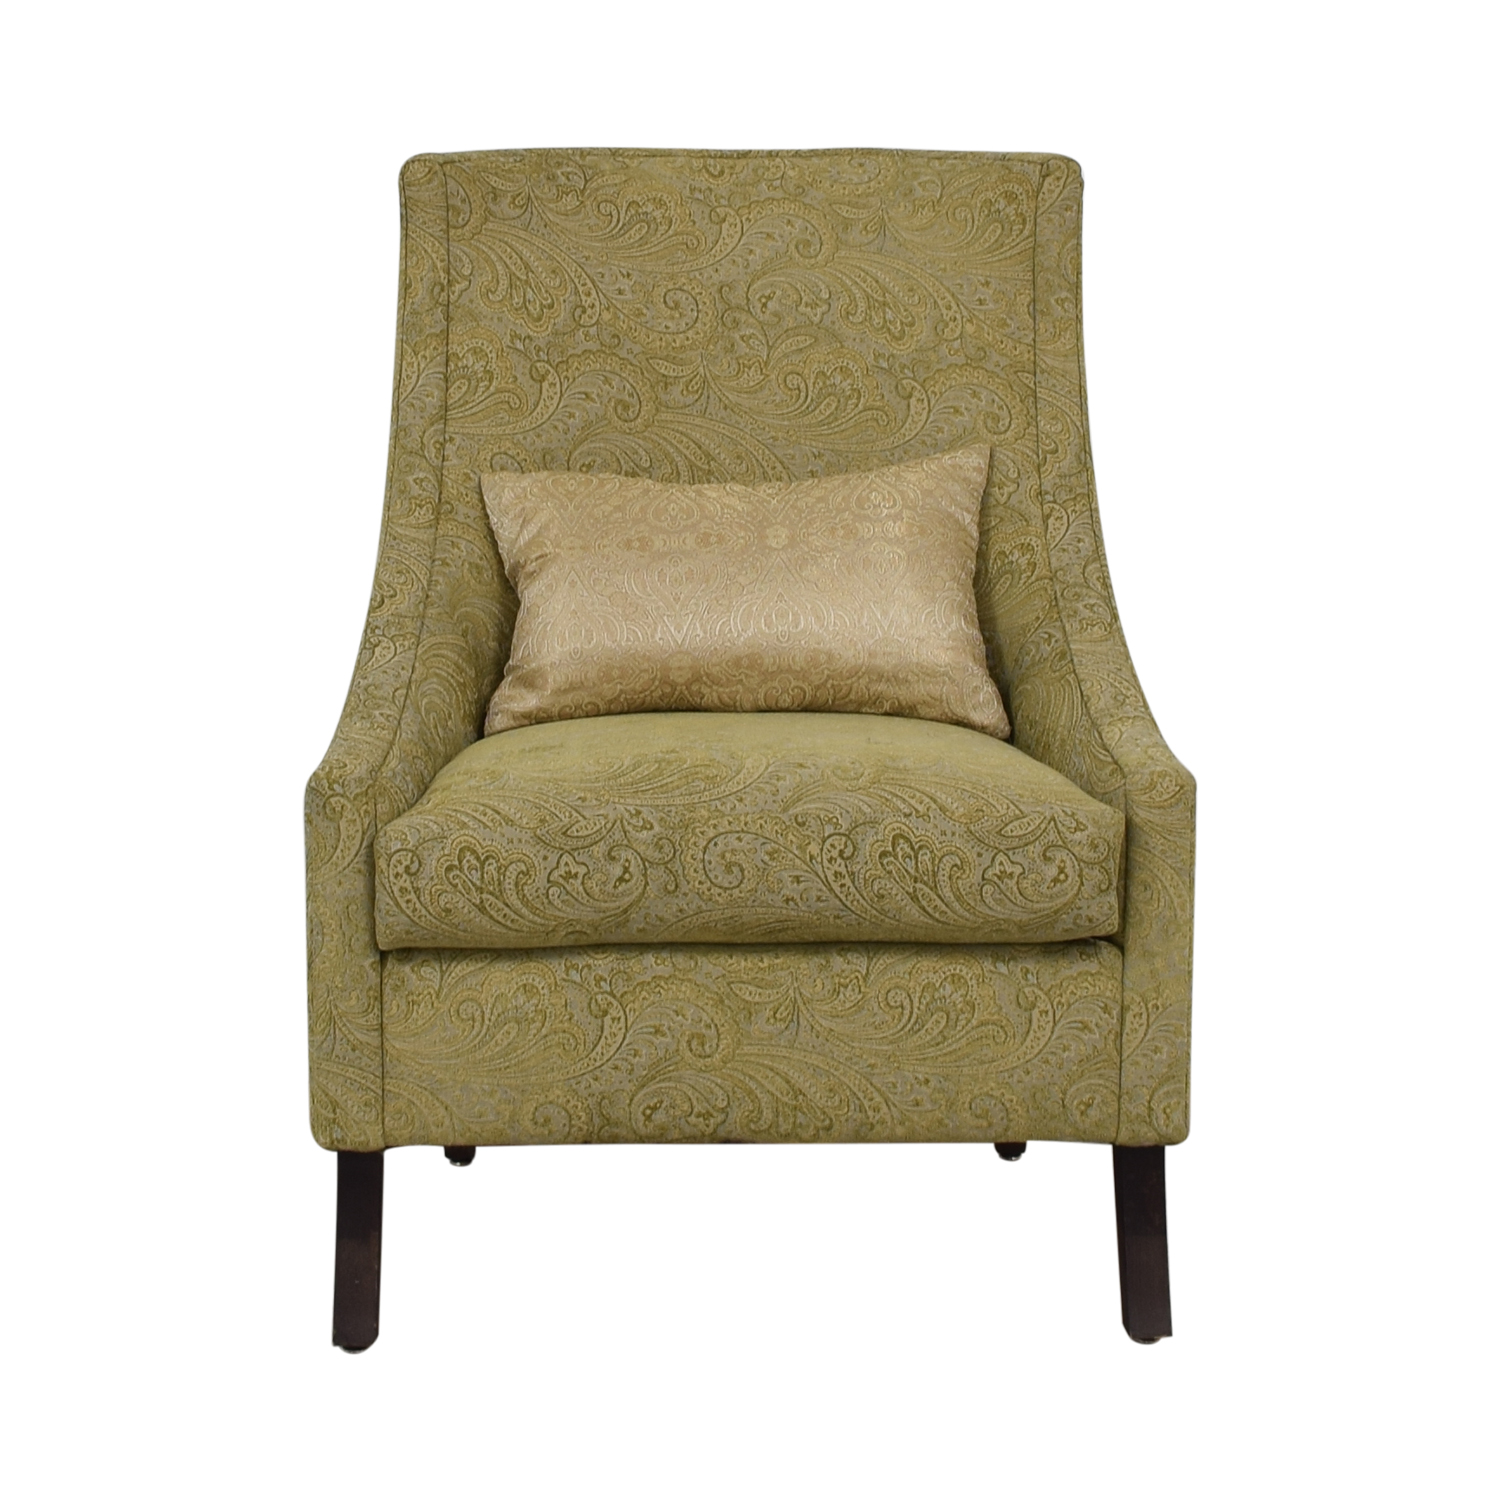 buy Rowe Furniture Dixon Beige Accent Chair Rowe Furniture Accent Chairs